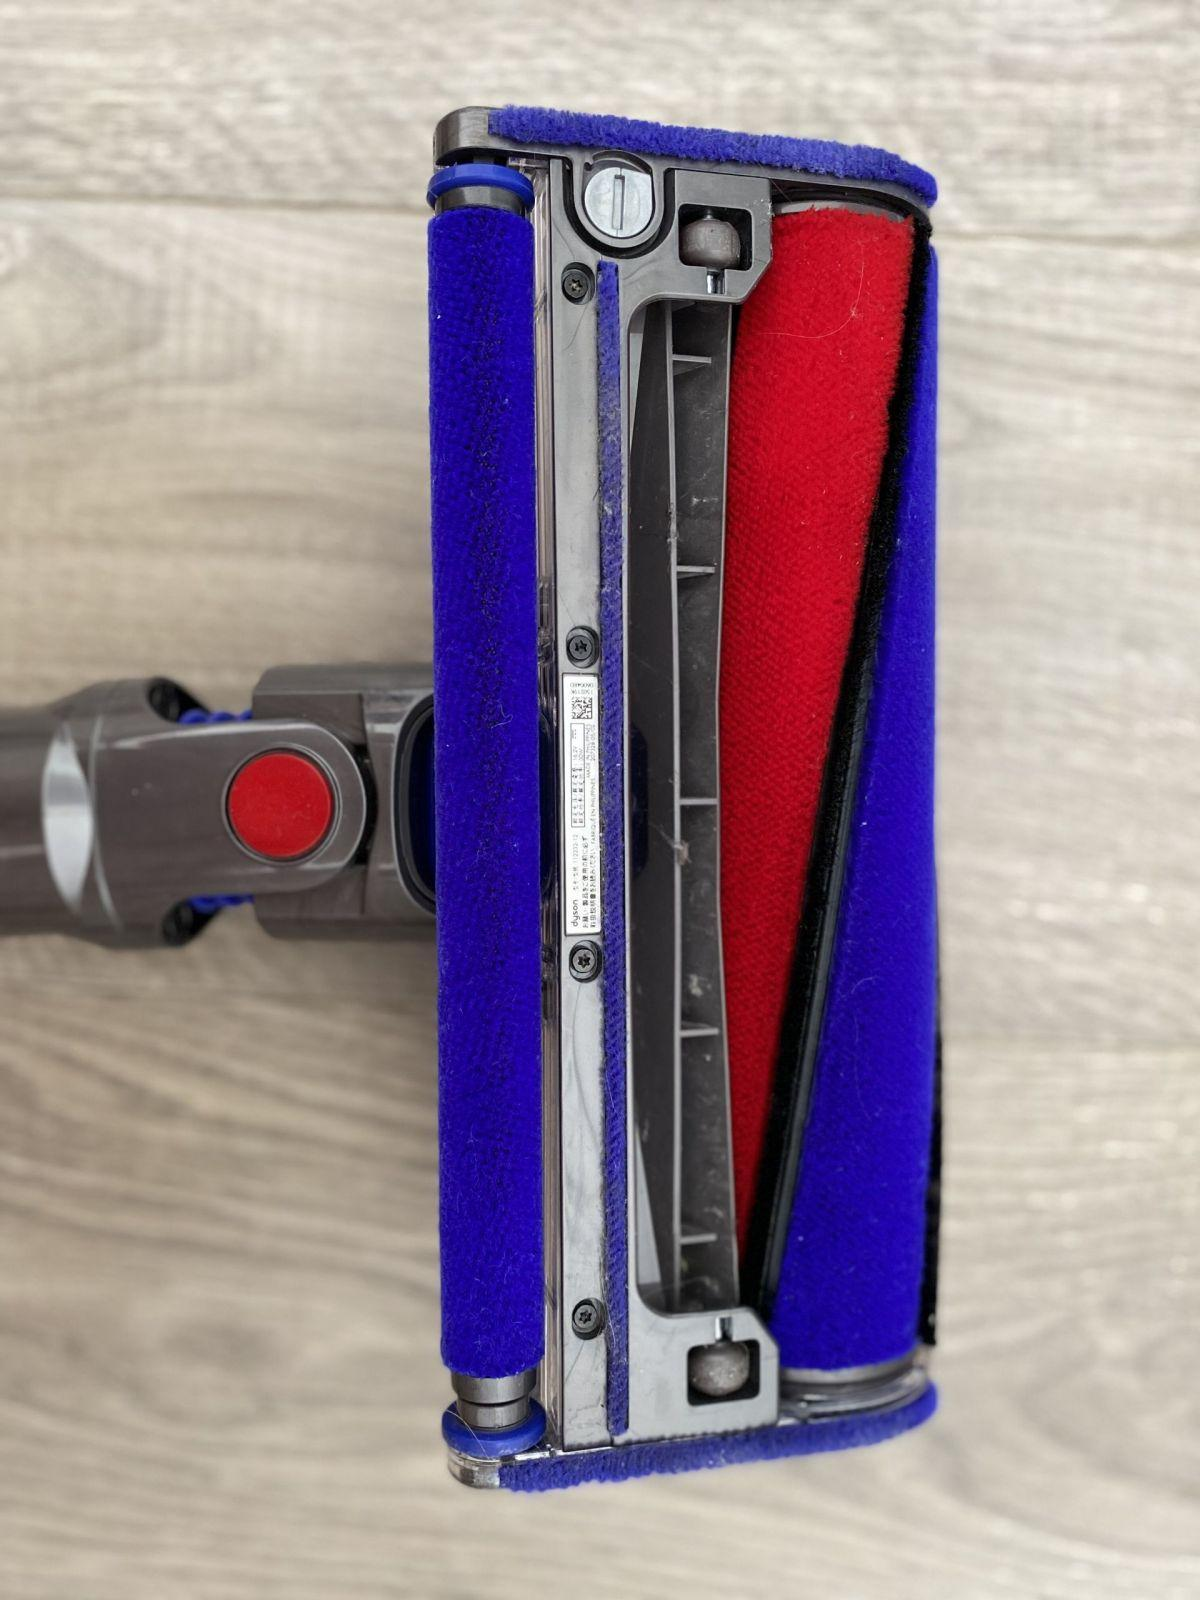 Free from dust and wires.  Dyson V11 Absolute Review Dust and Wire Free.  Dyson V11 Absolute review